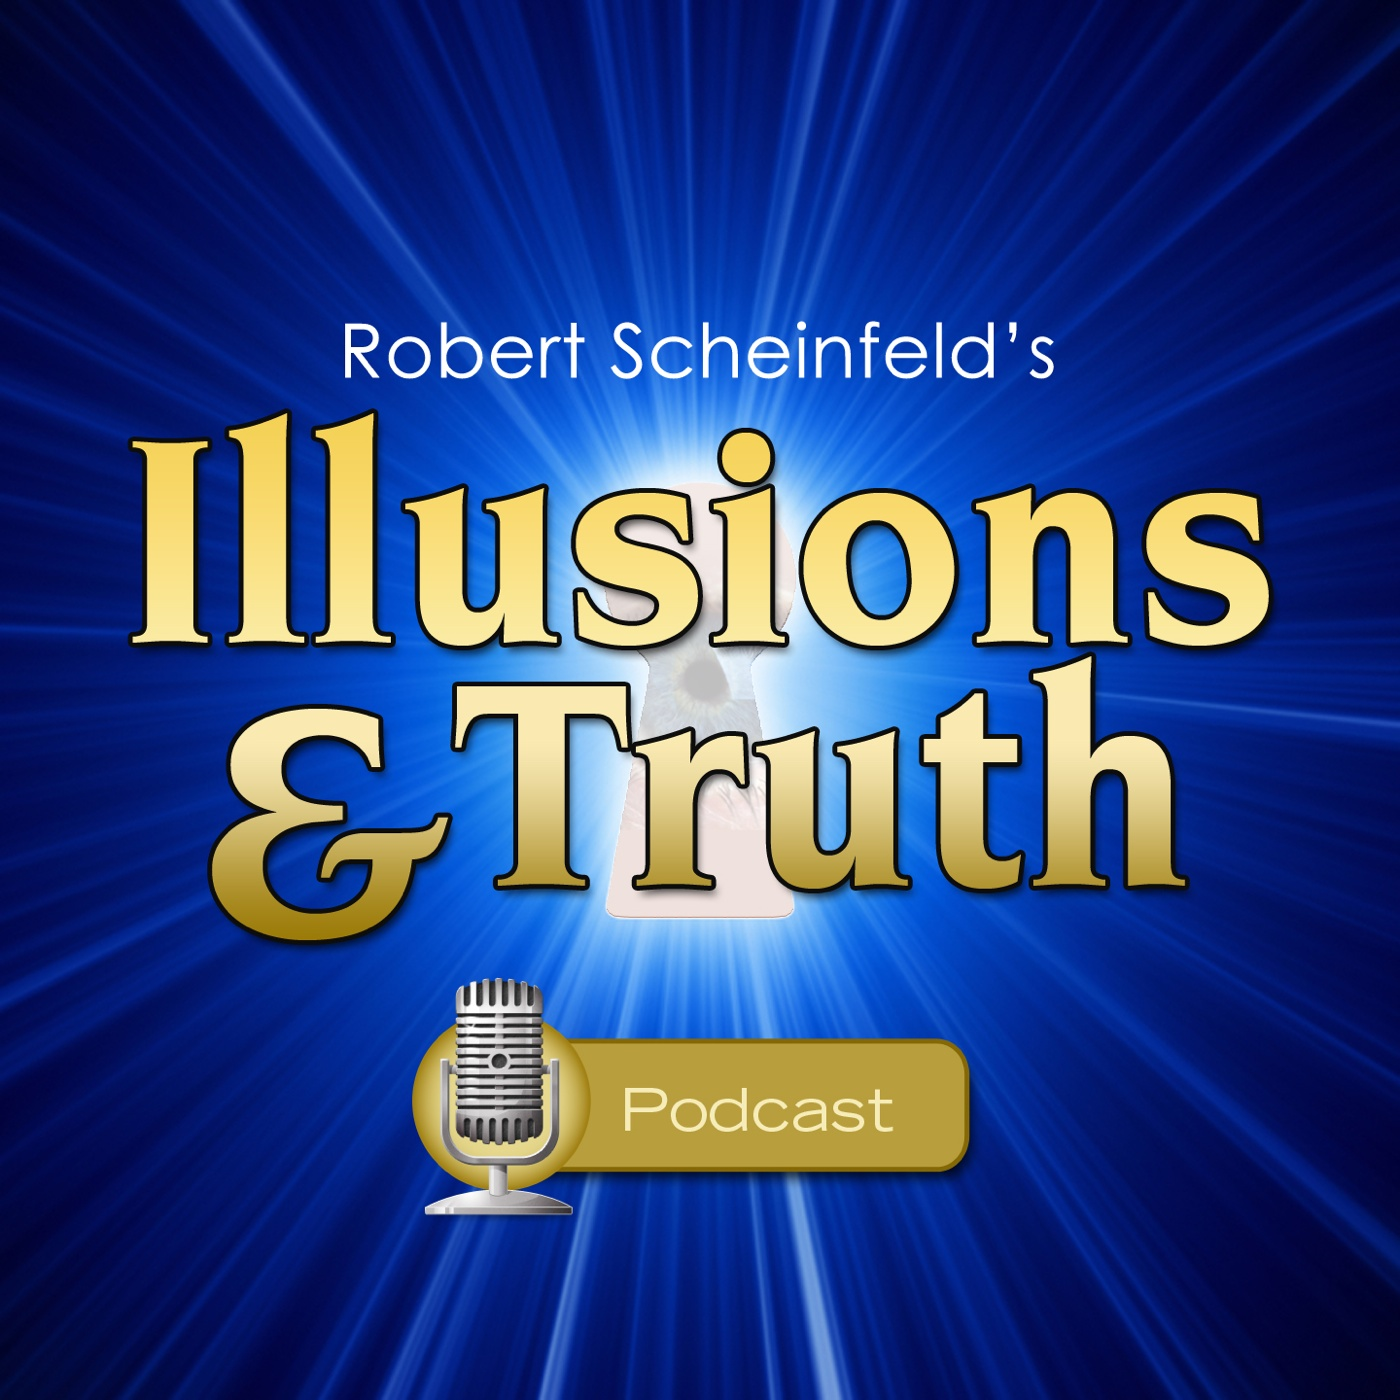 Robert Scheinfeld's Illusions And Truth Show